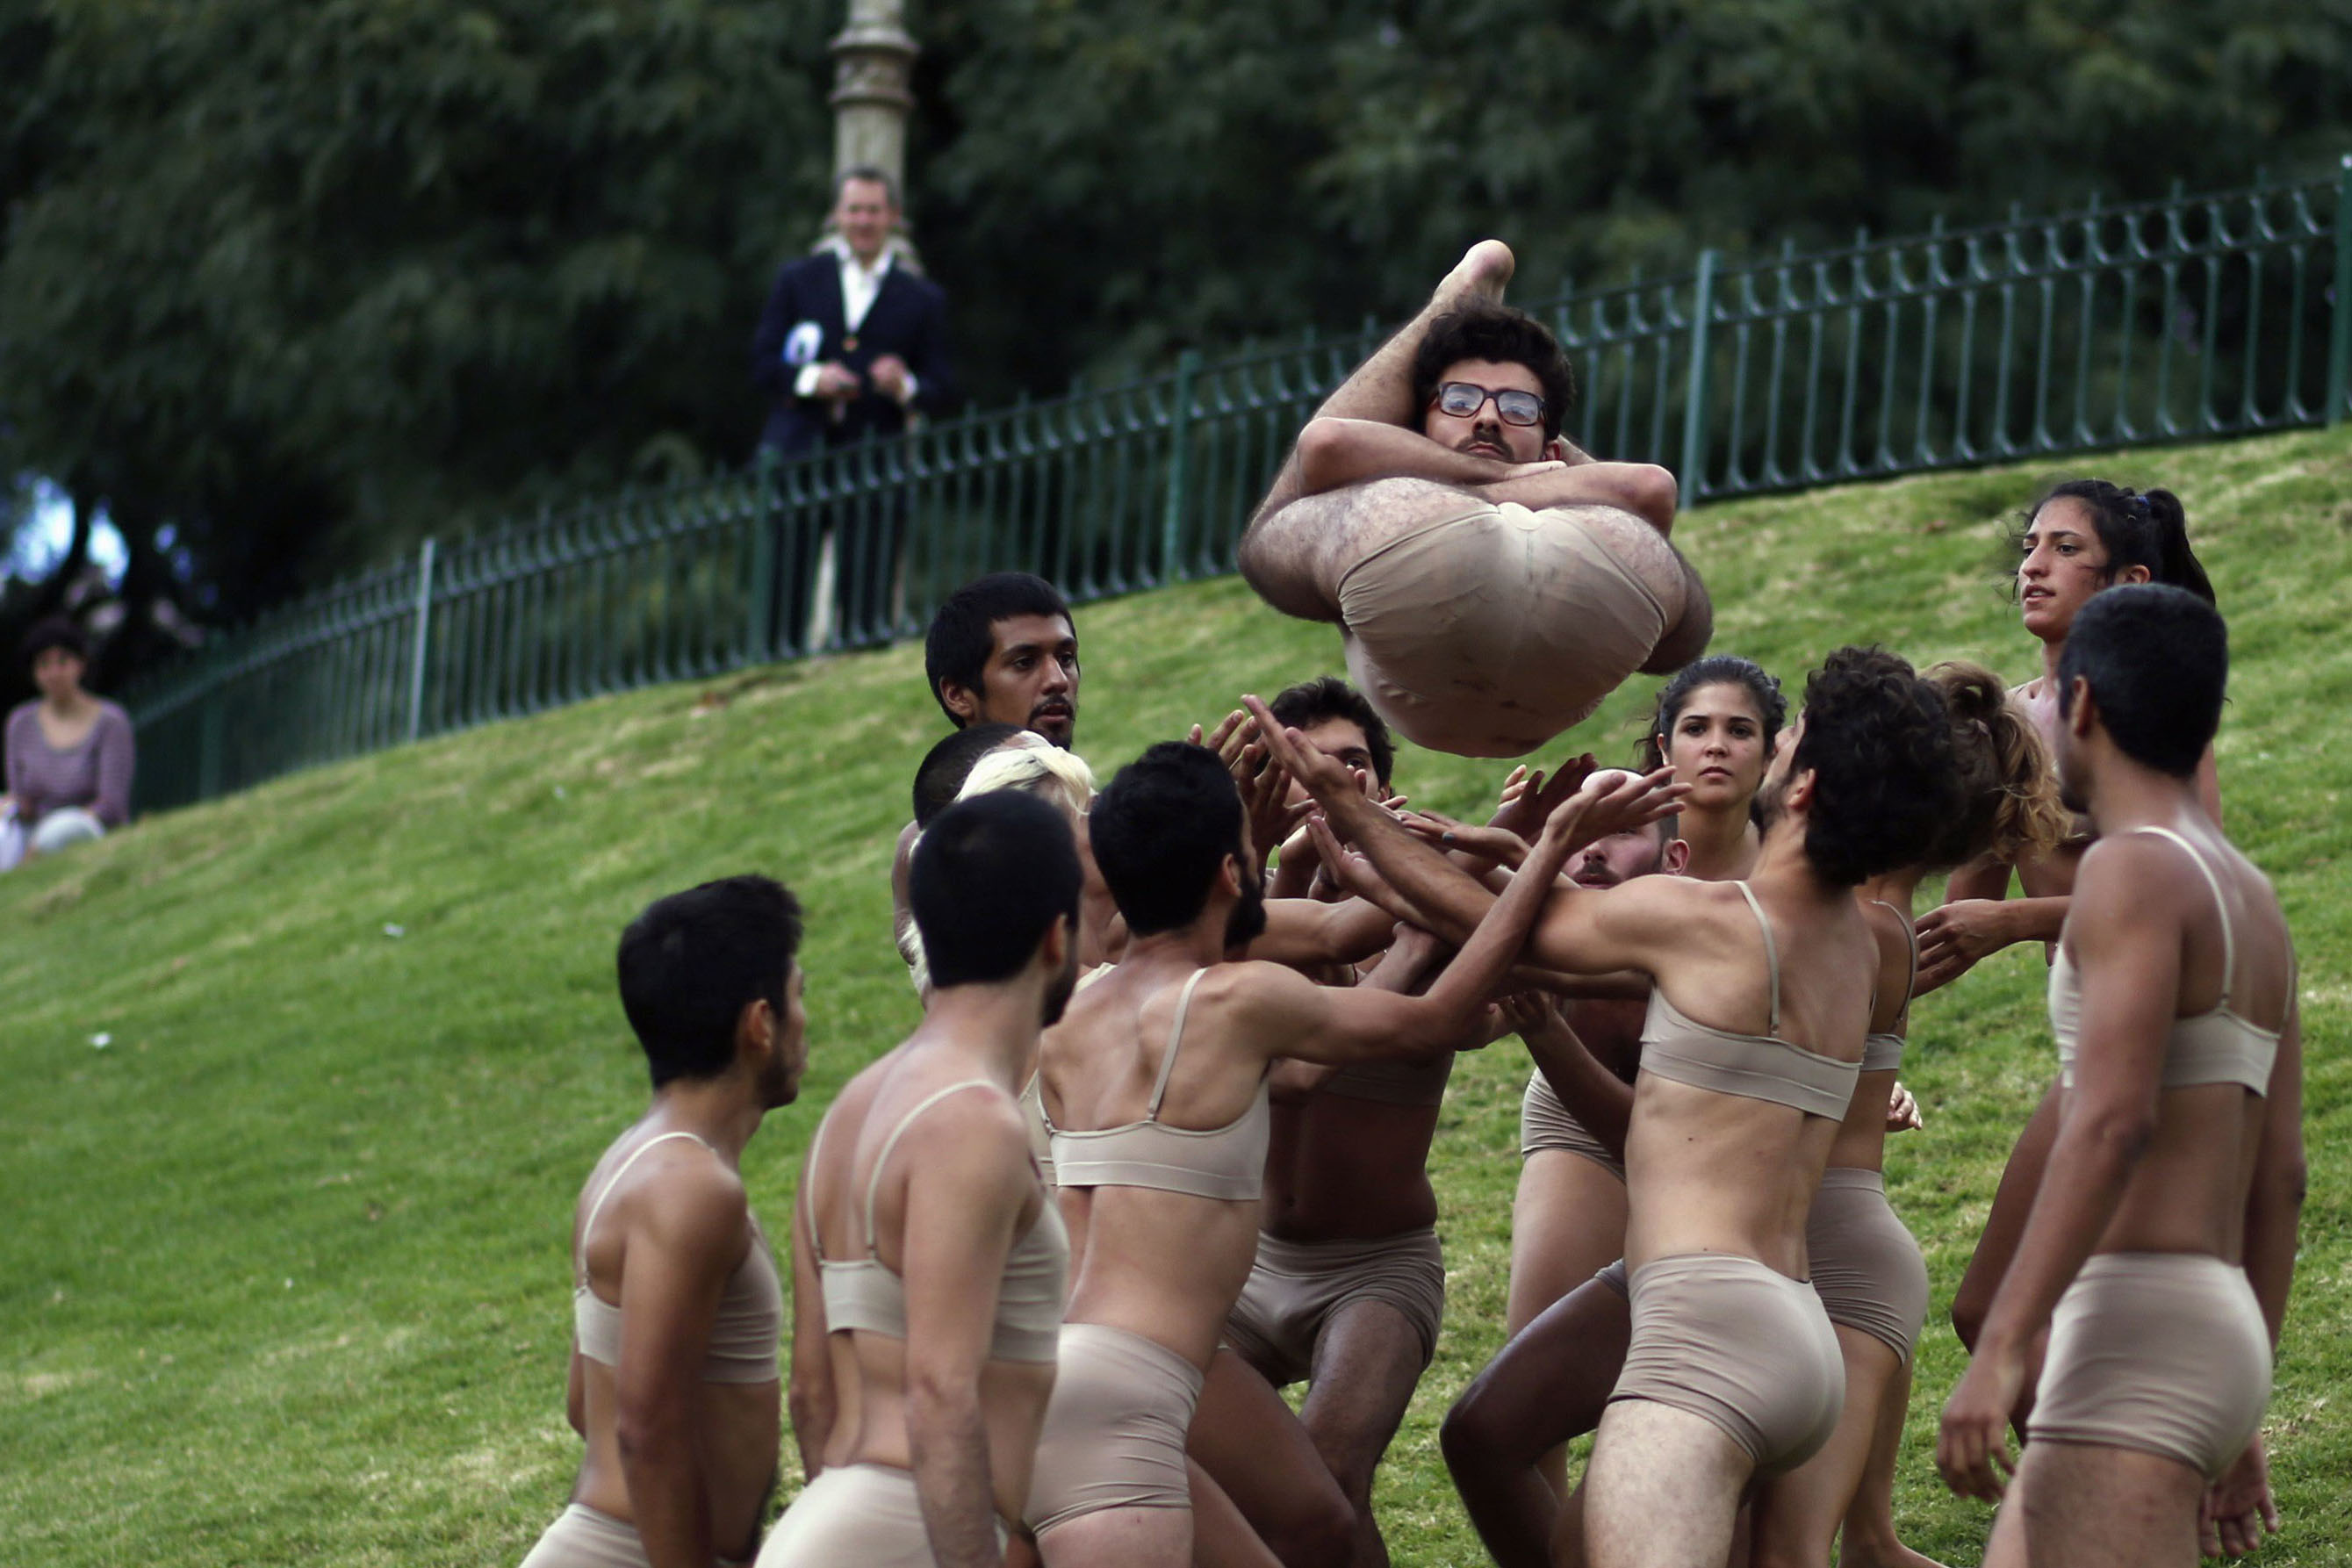 Members of the IUNA Ballet perform during a rehearsal of their show,  Dressed by Grace,  at a public square ahead of the Ciudanza Dance Festival in Buenos Aires March 5, 2014.